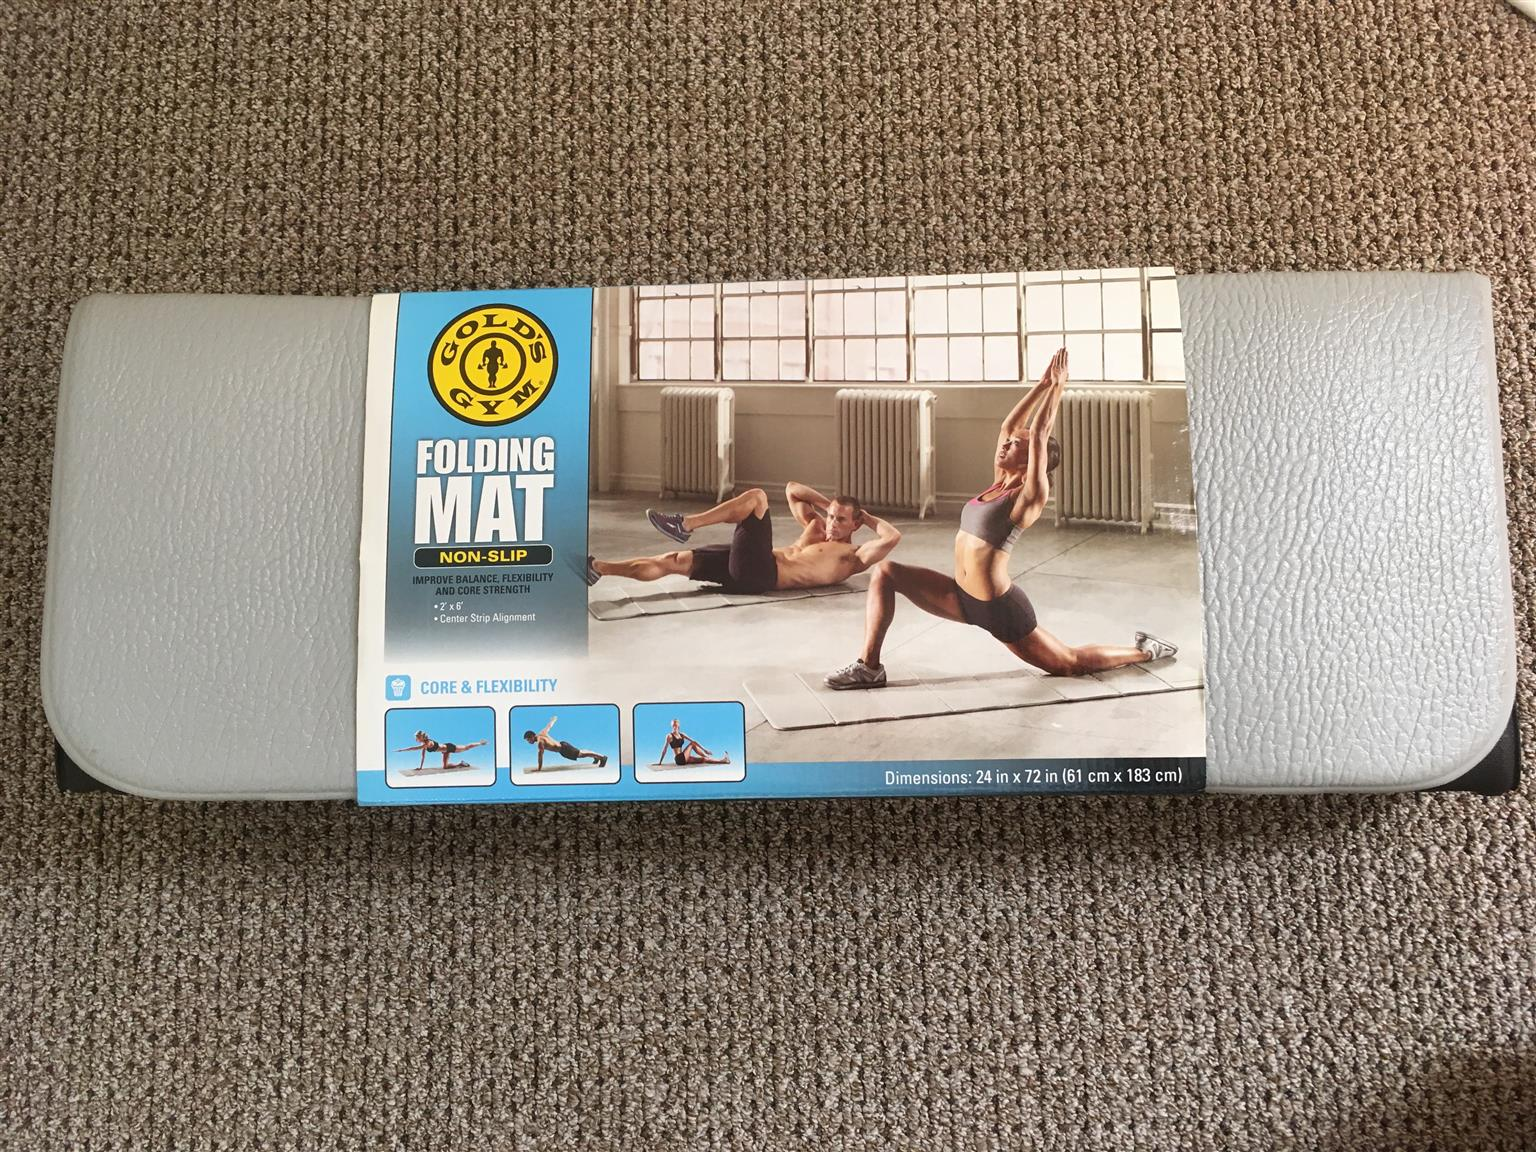 Gold's Gym Folding Exercise Mat